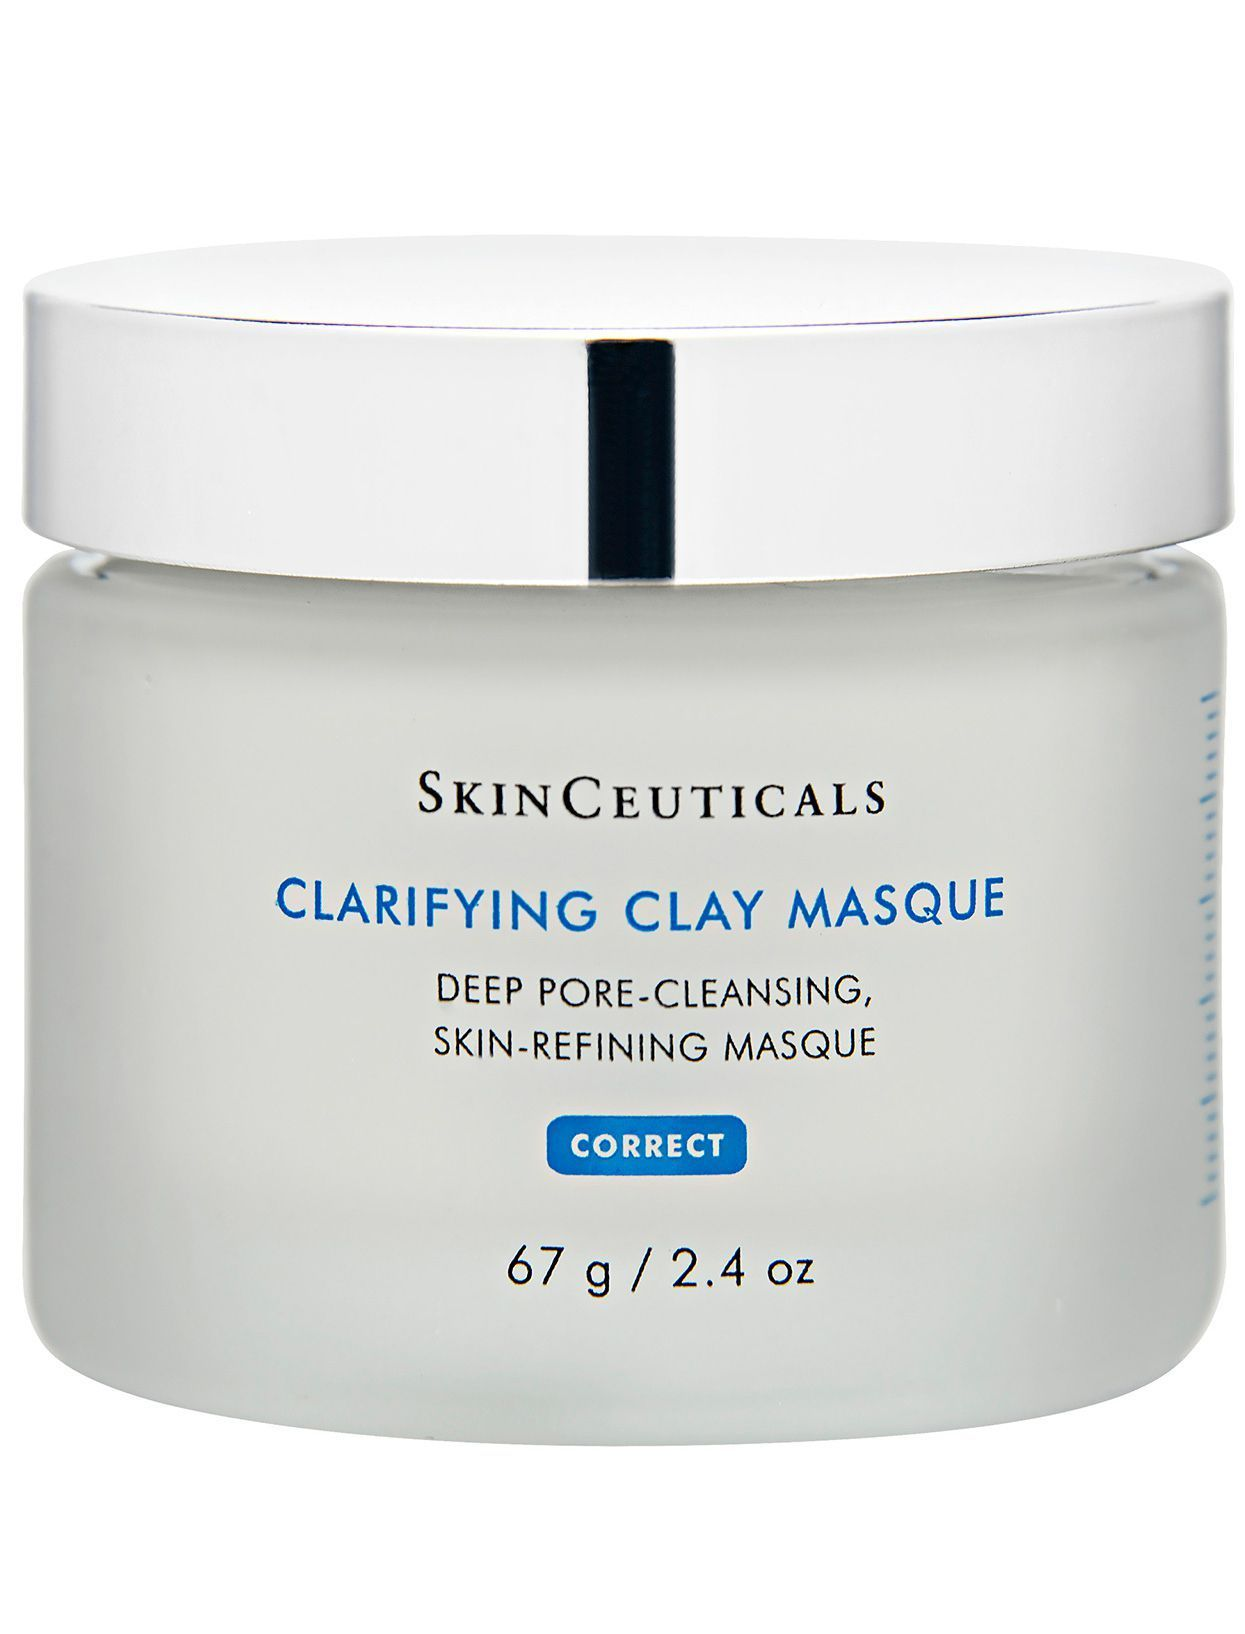 Meet The 7 Best Face Masks For Acne Prone Skin According To Reddit Face Care Acne Natural Facial Cleanser Best Face Products